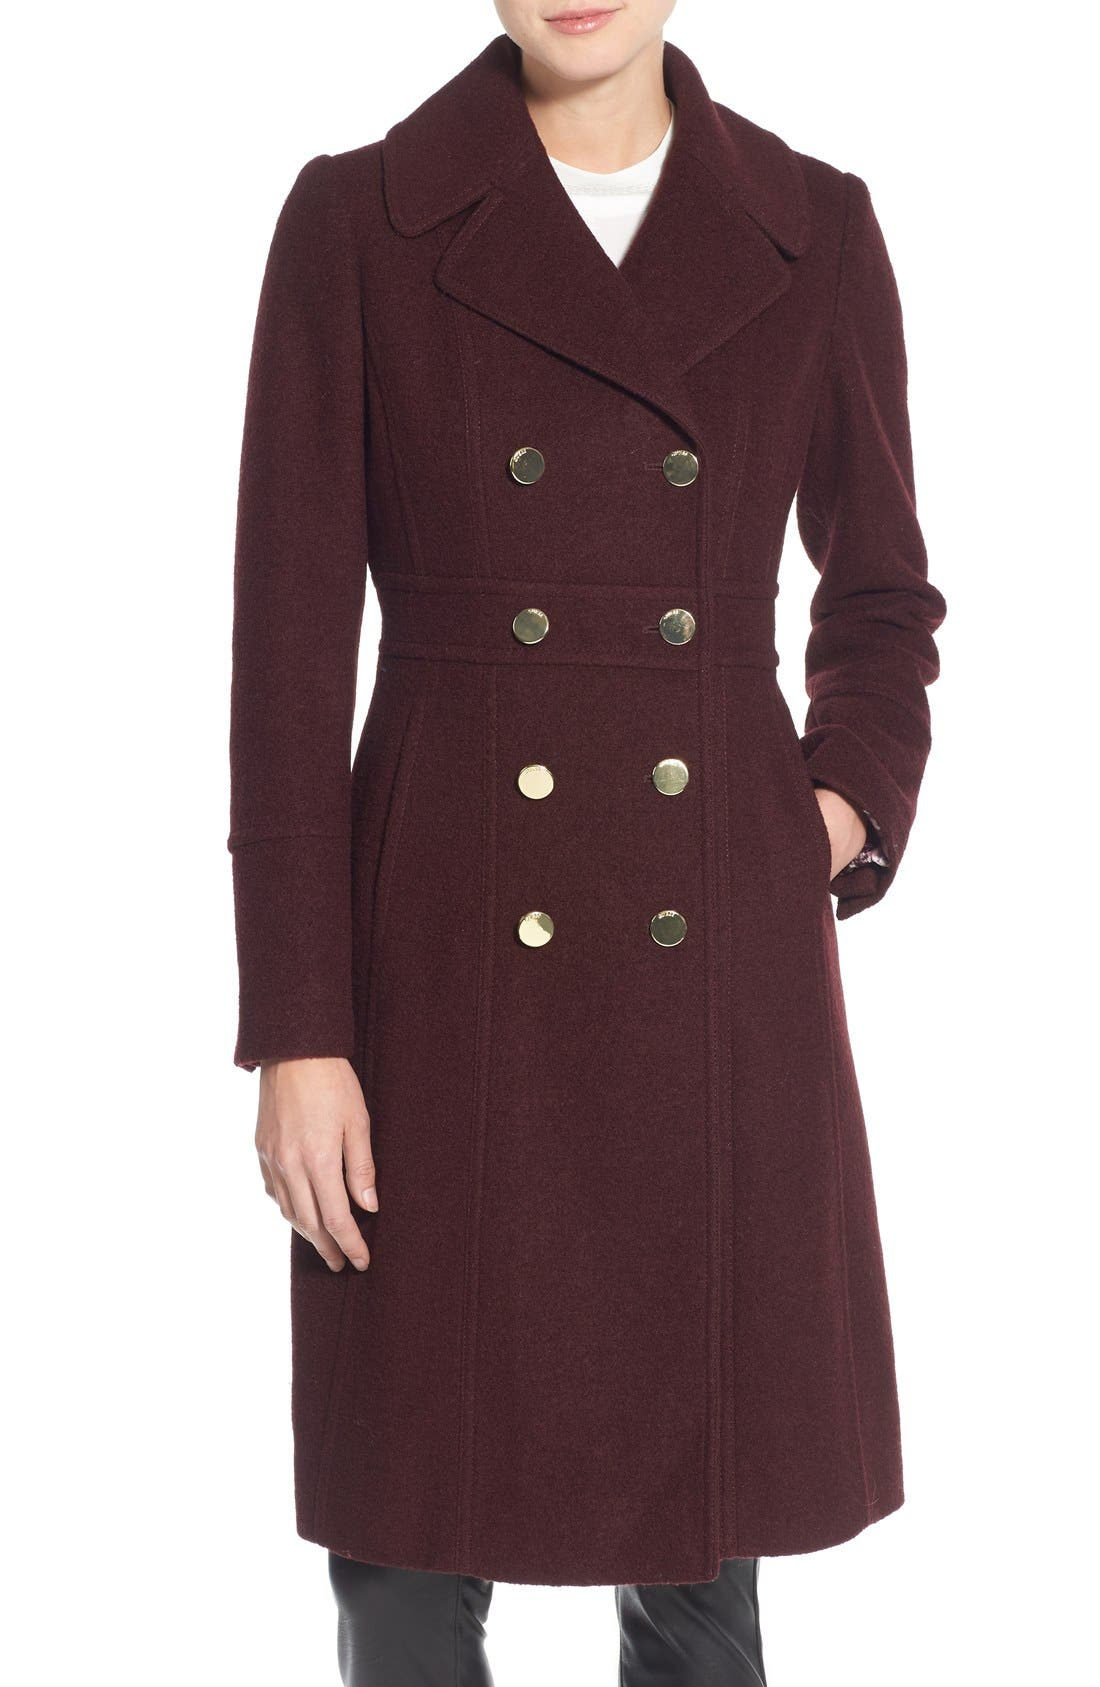 Main Image - GUESS Fit & Flare Military Coat